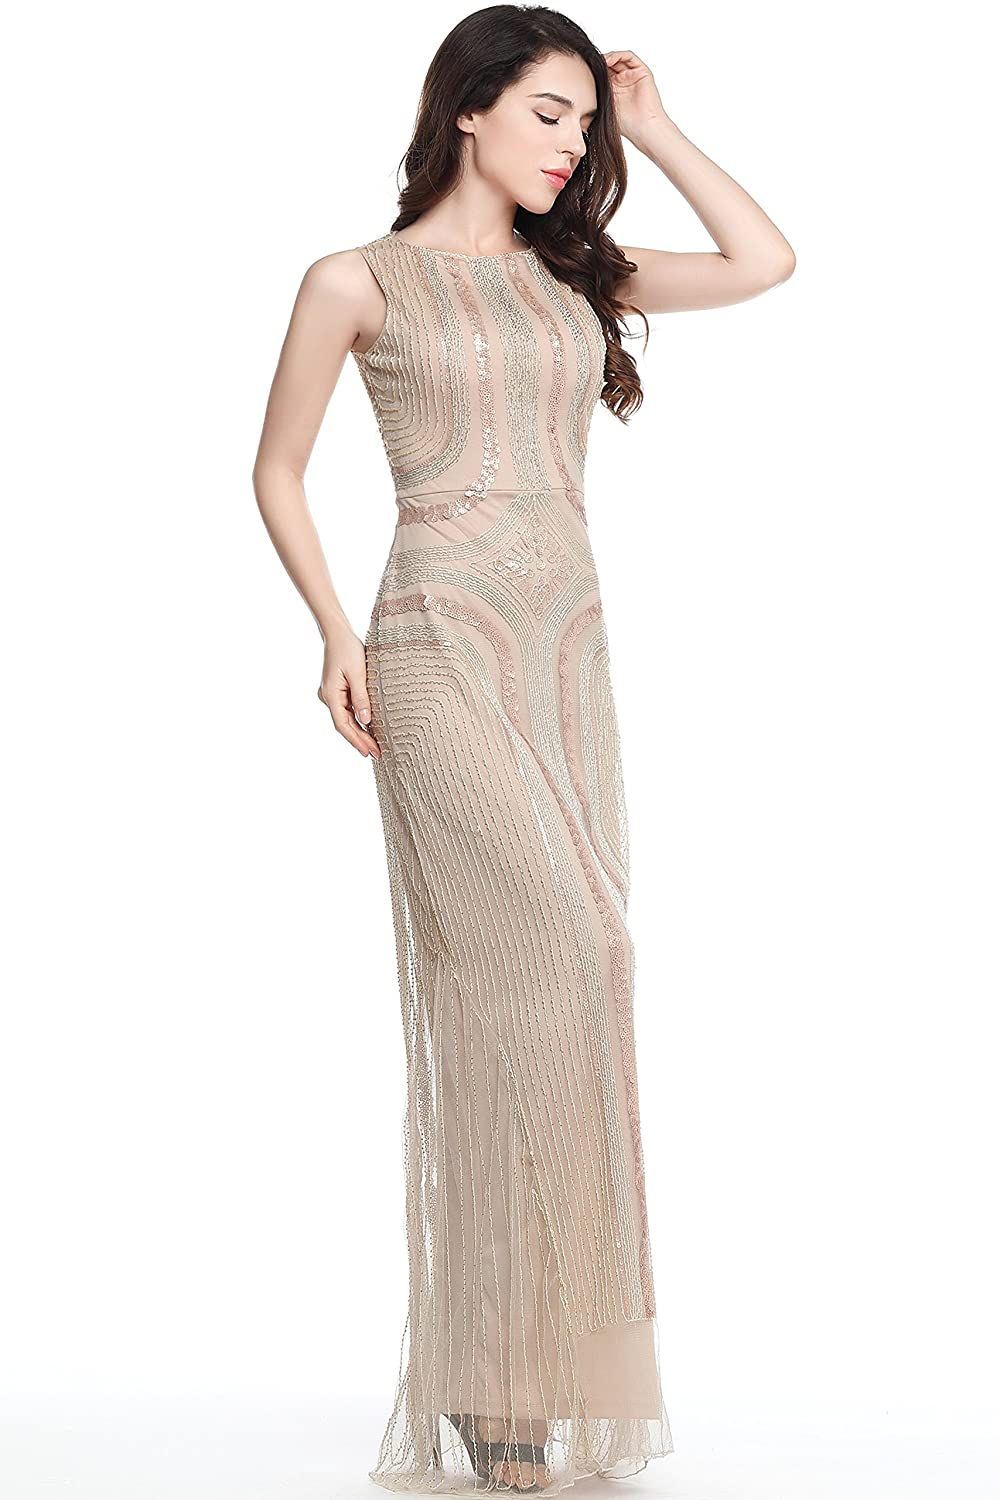 1920s Clothing BABEYOND 1920s Flapper Fancy Dress Roaring 20s Gatsby Dress Costume Vintage Sequin Beaded Long Evening Dress $39.99 AT vintagedancer.com